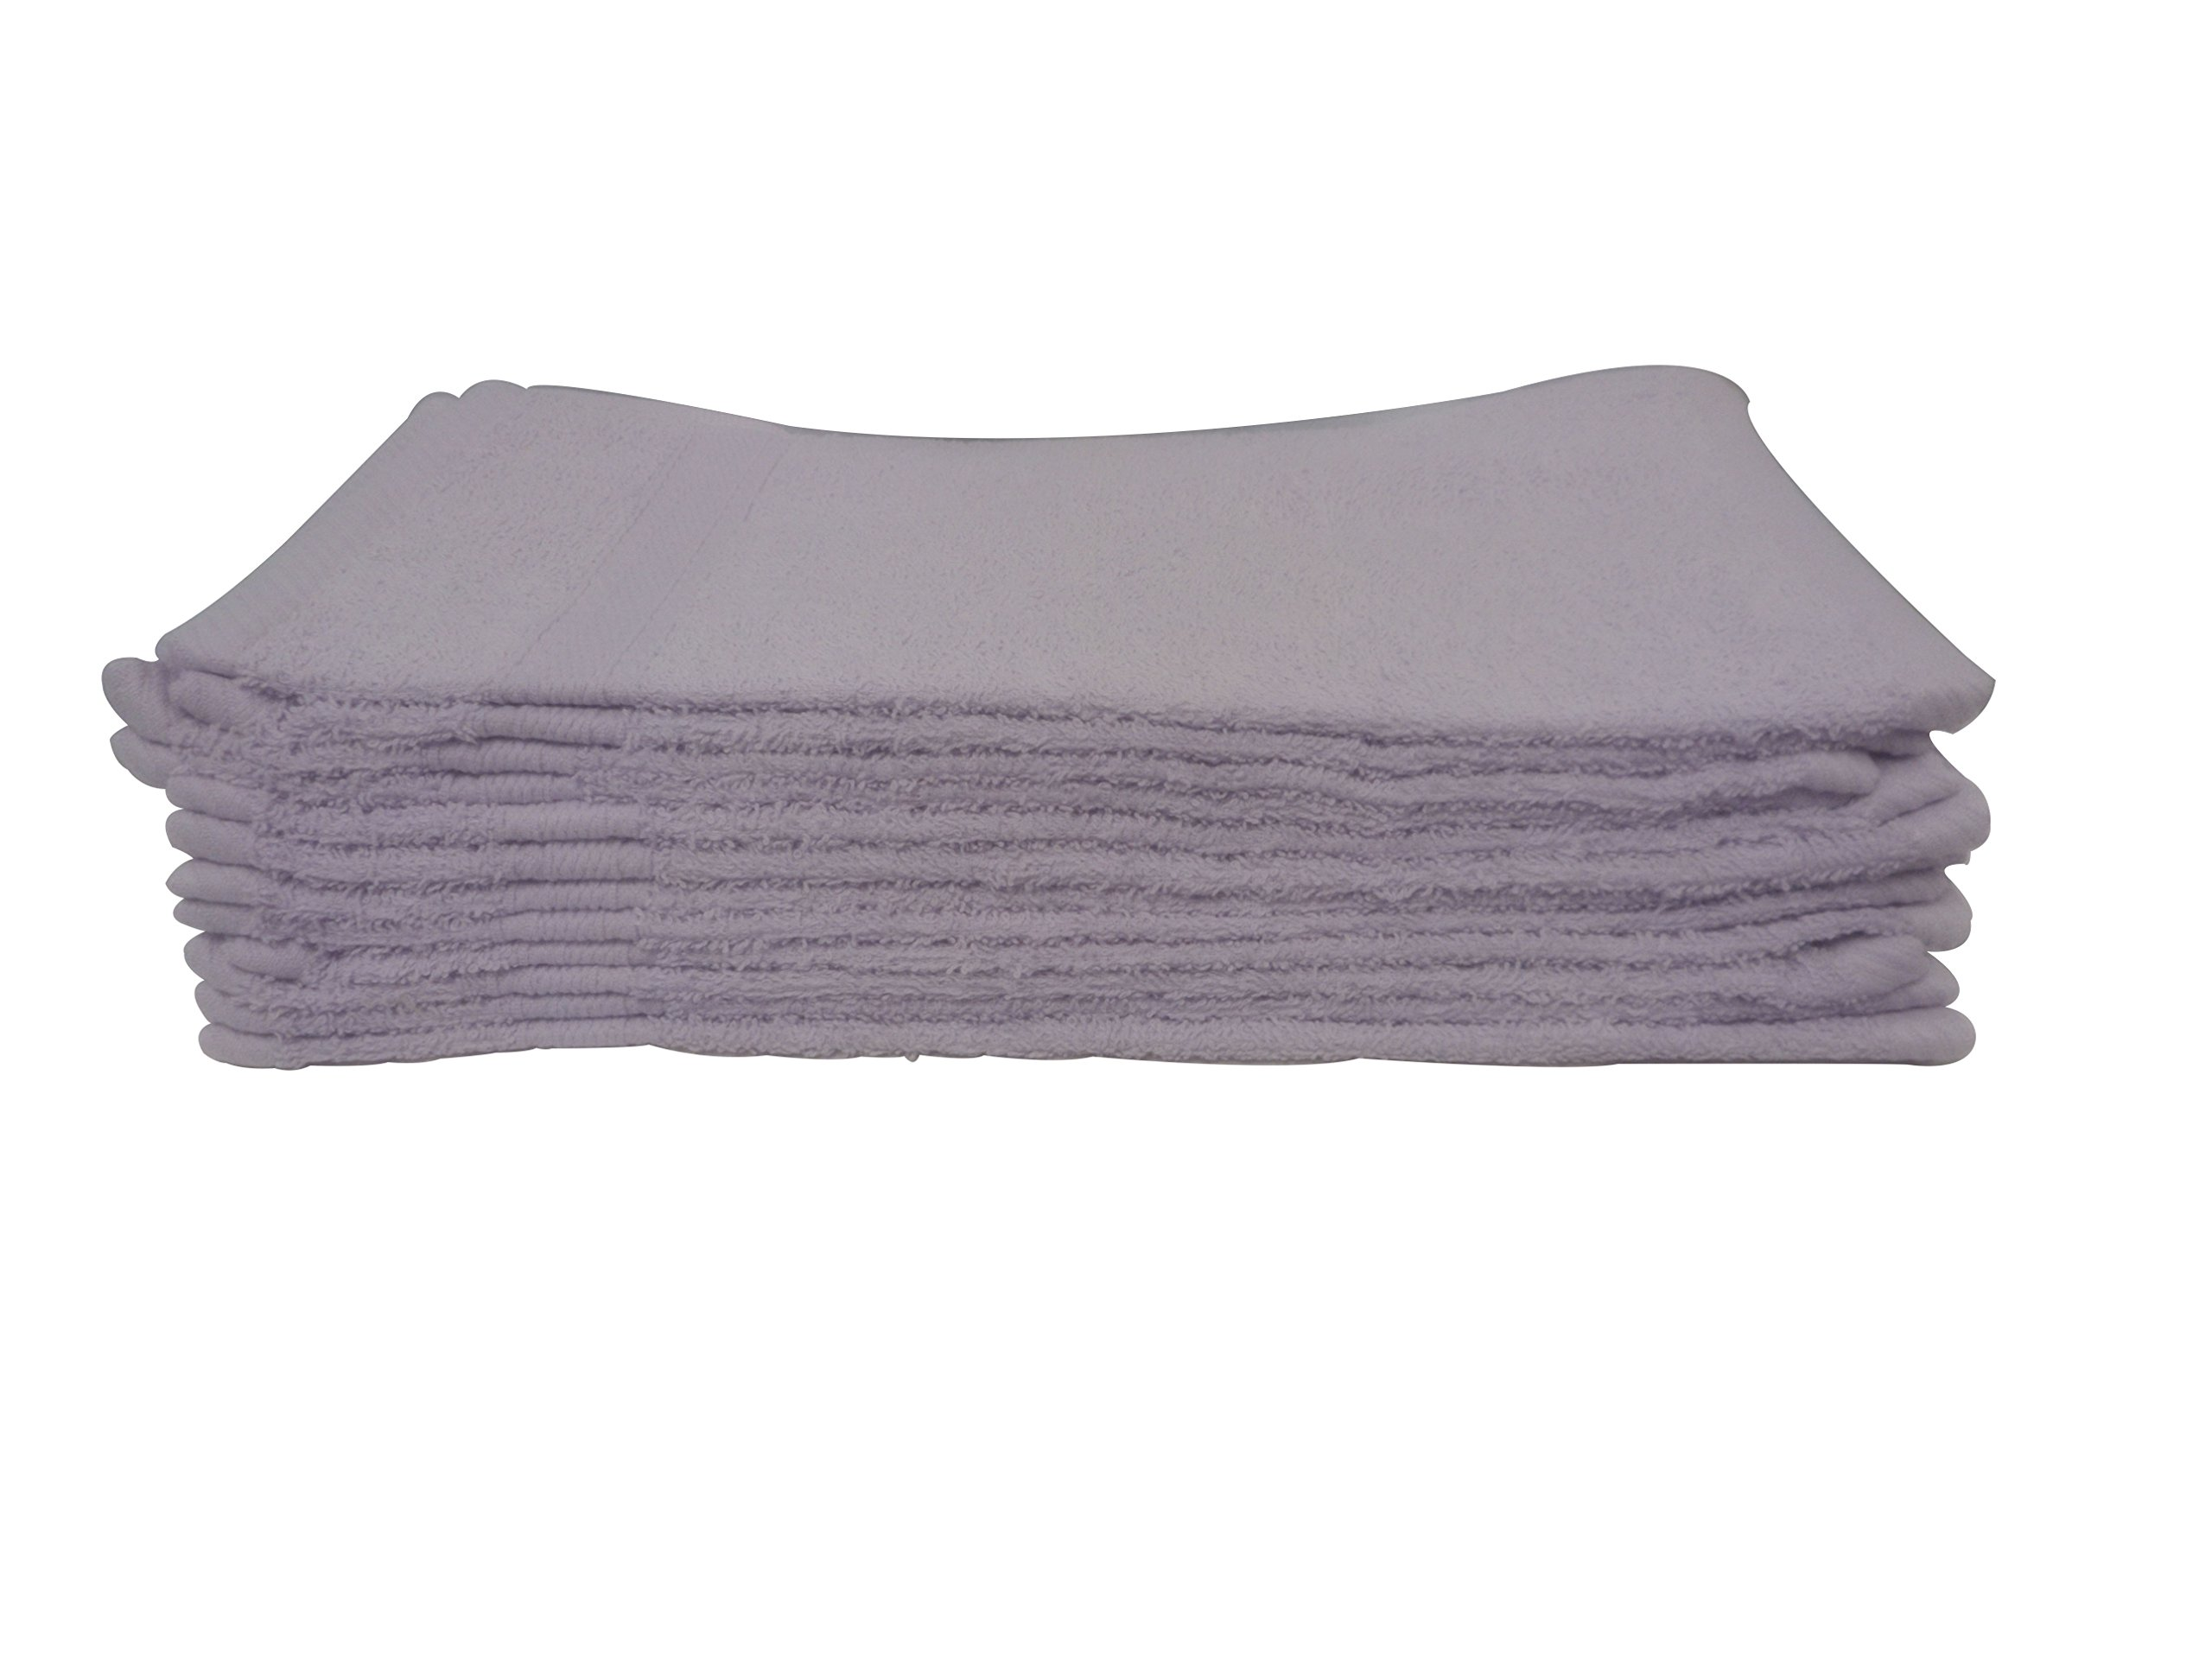 Luxurious Ultra Soft 100Percent Genuine Cotton 13''X13'' Wash Cloth -Highly Absorbent Multi-Purpose Extra Soft Baby, Face, Hand, Gym Spa Towels.Lavender/Purple,12Pcs-Pack